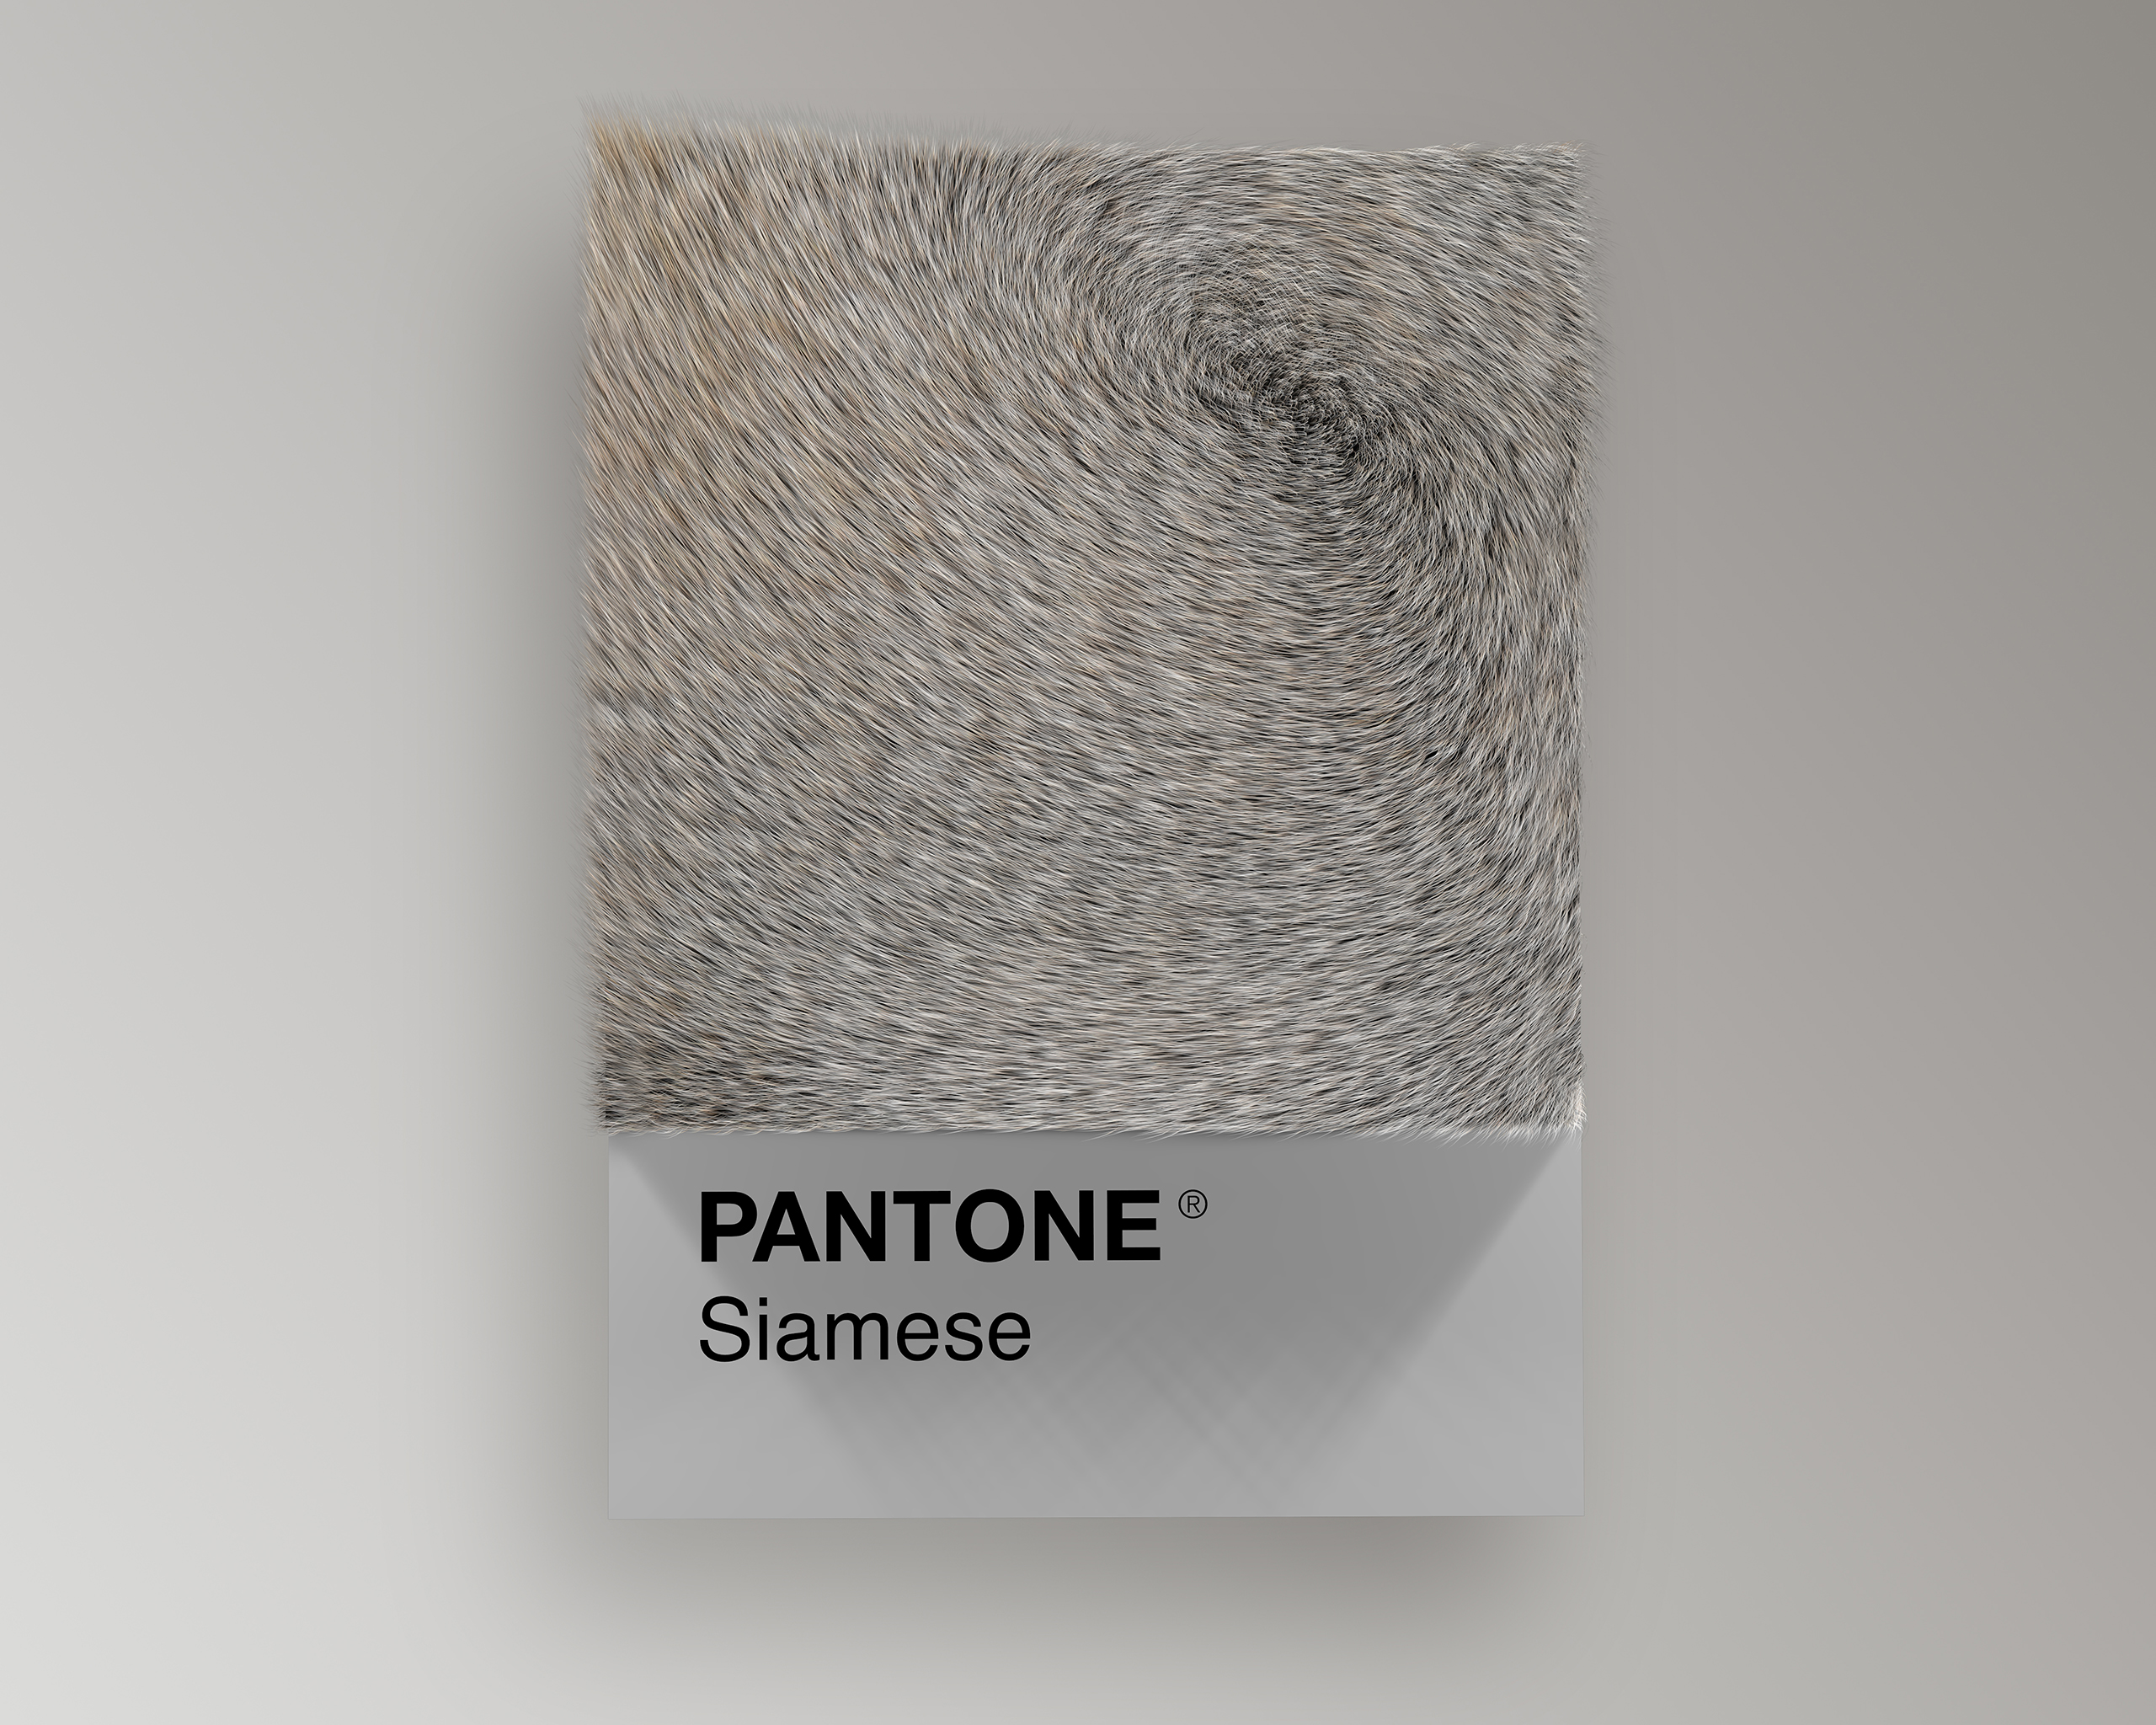 Siamese Cat as Pantone